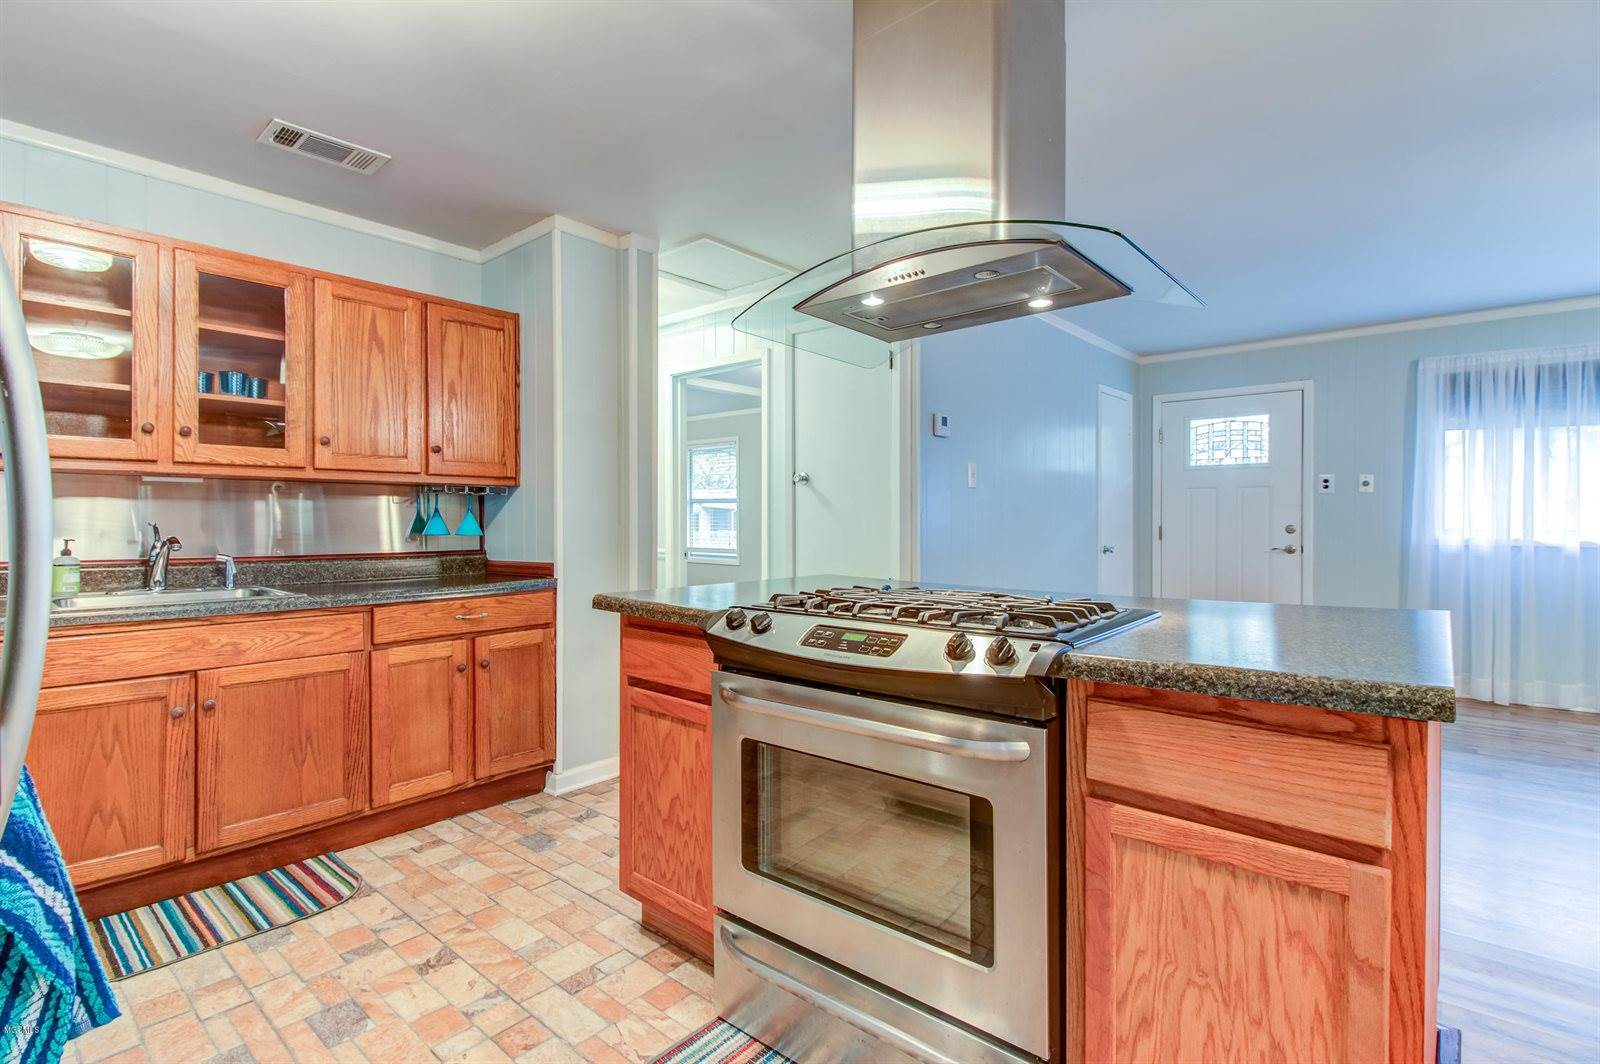 2915 Criswell Ave, Pascagoula, MS 39567